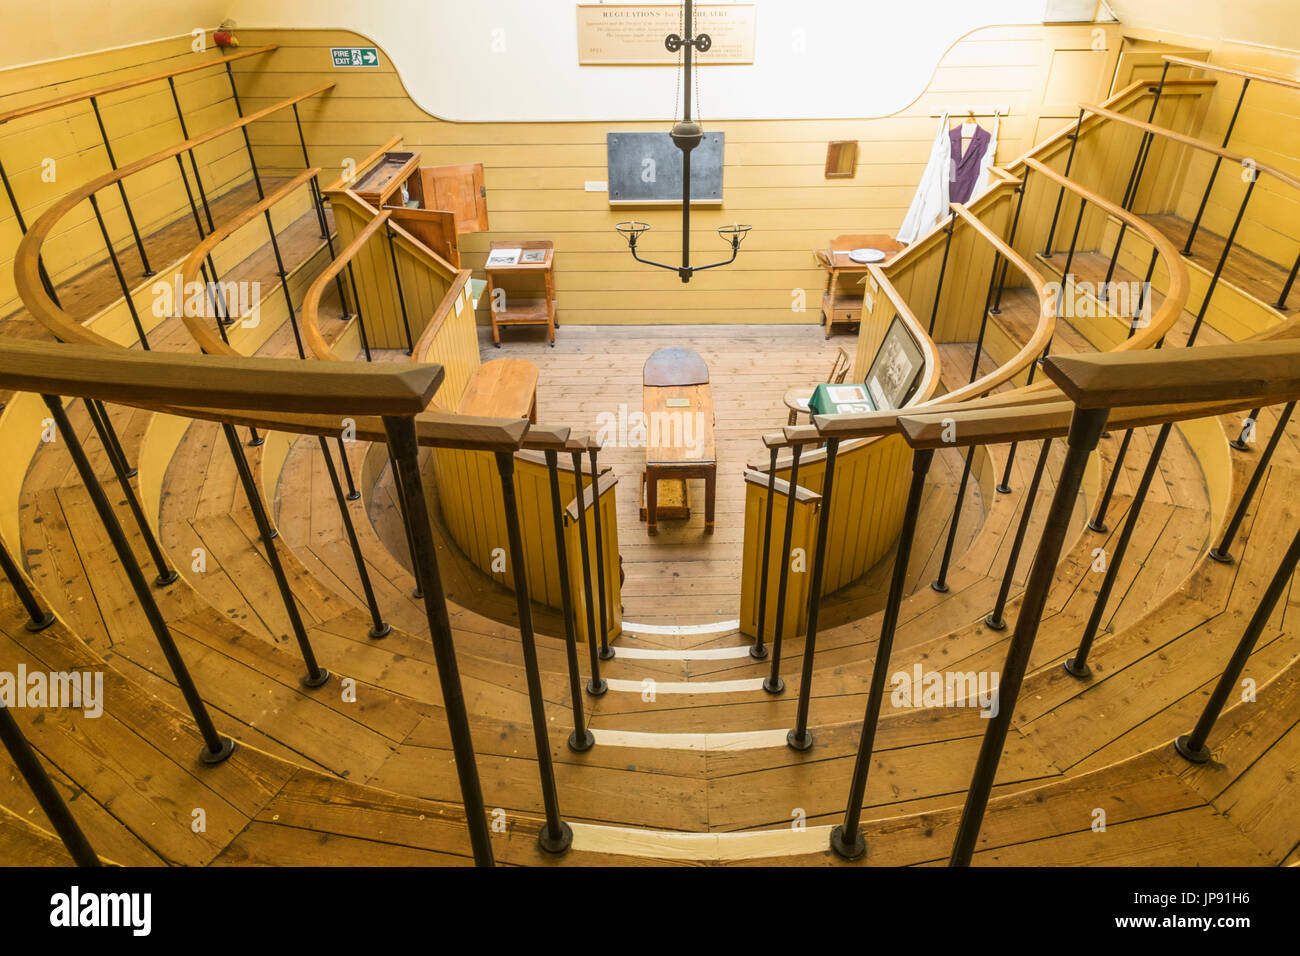 England, London, Southwark, The Old Operating Theatre and Herb Garrett Museum - Stock Image